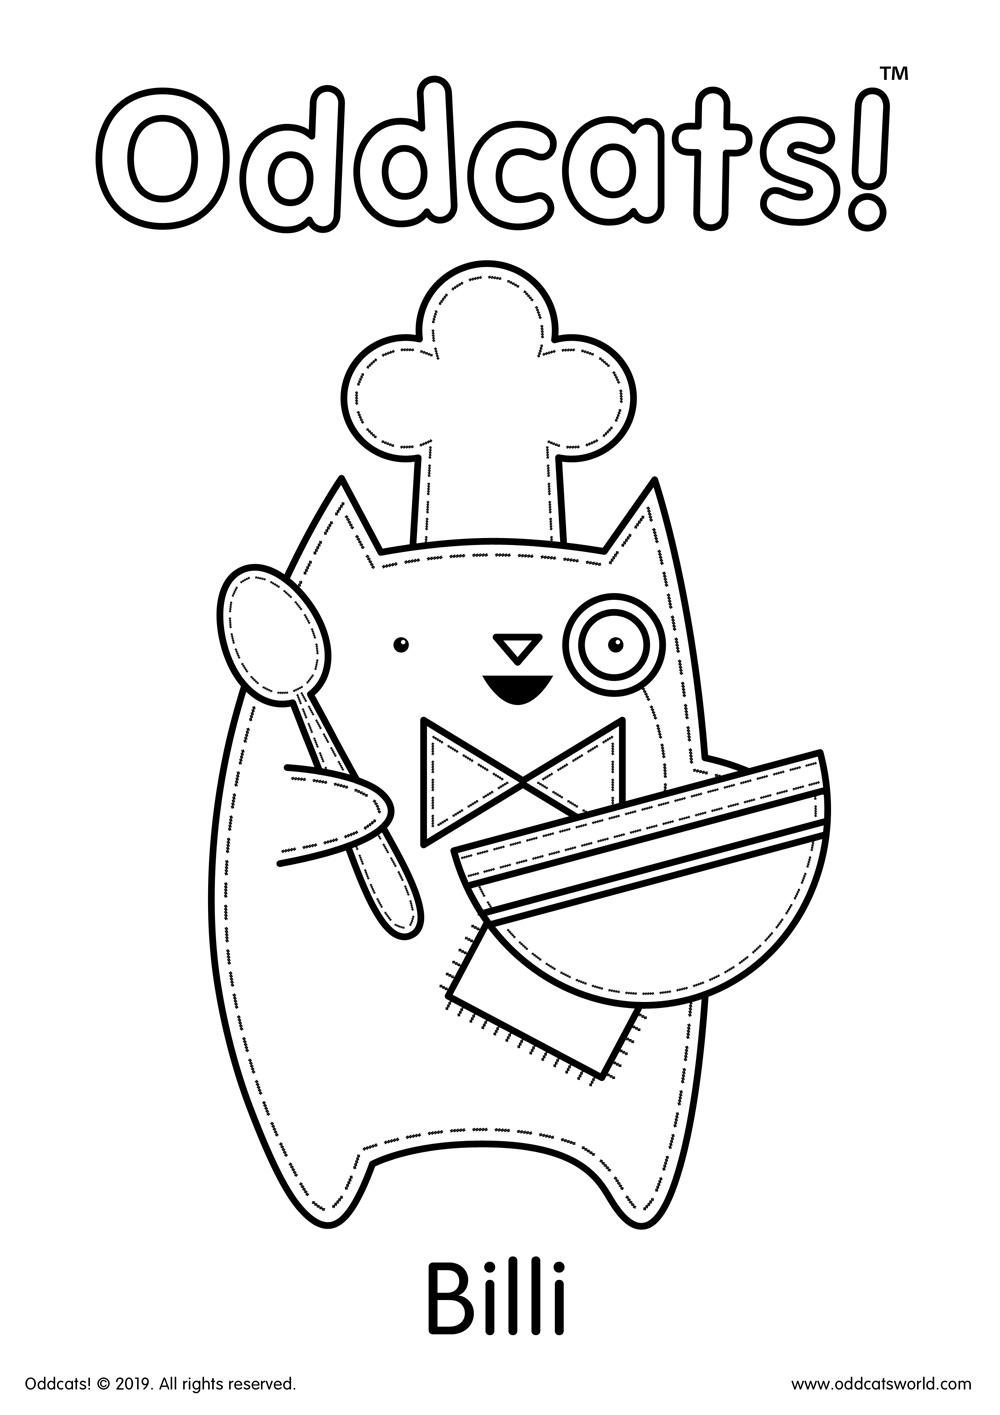 oddcats_colouring_billi_thumb2.jpg